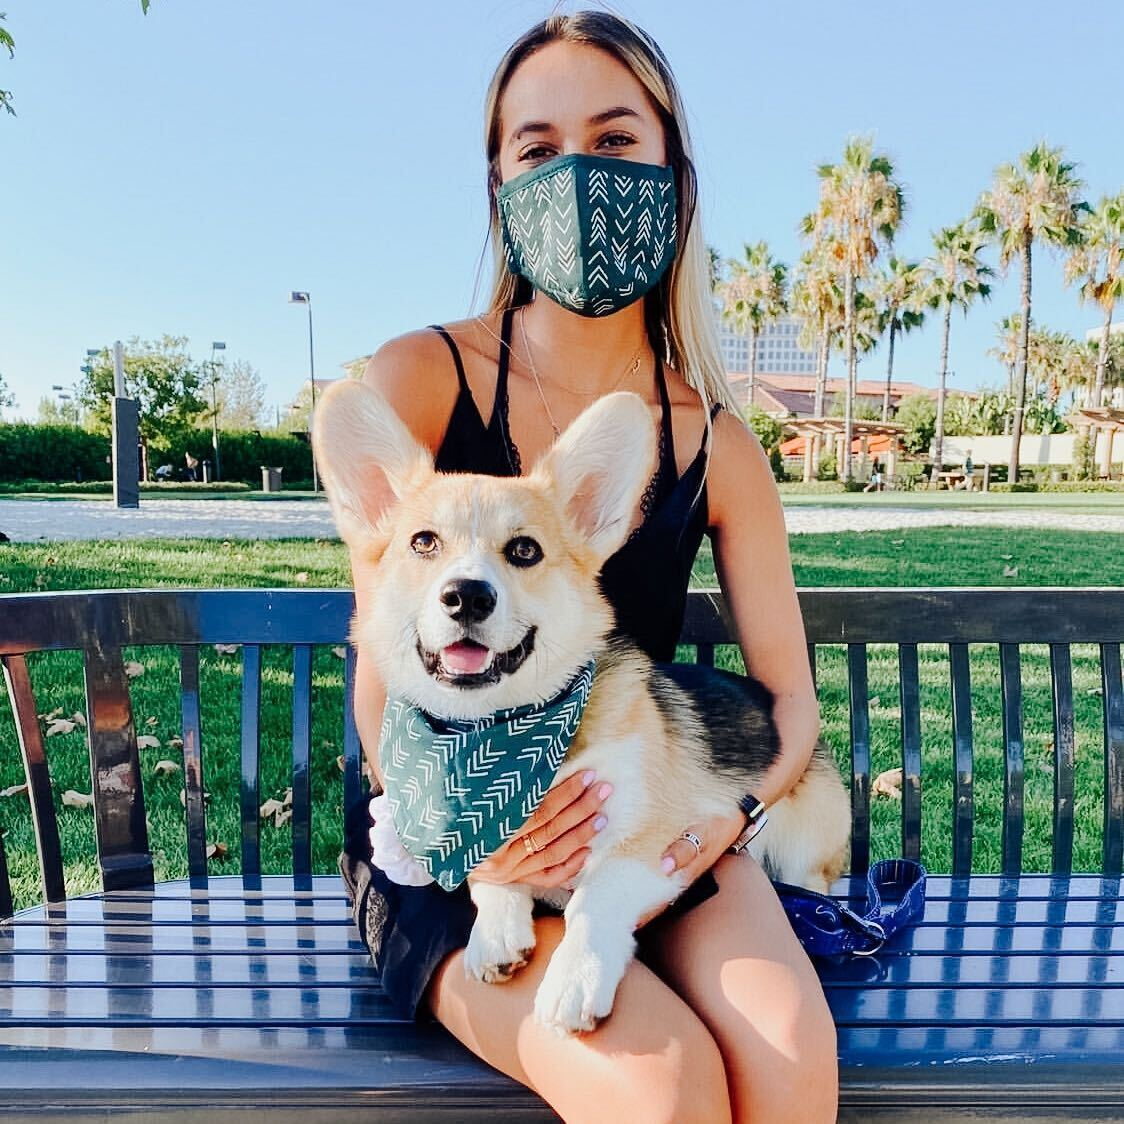 Bandana-and-facemask-for-twinning 10 Unique Luxury Gifts for Dogs That Amaze Everyone